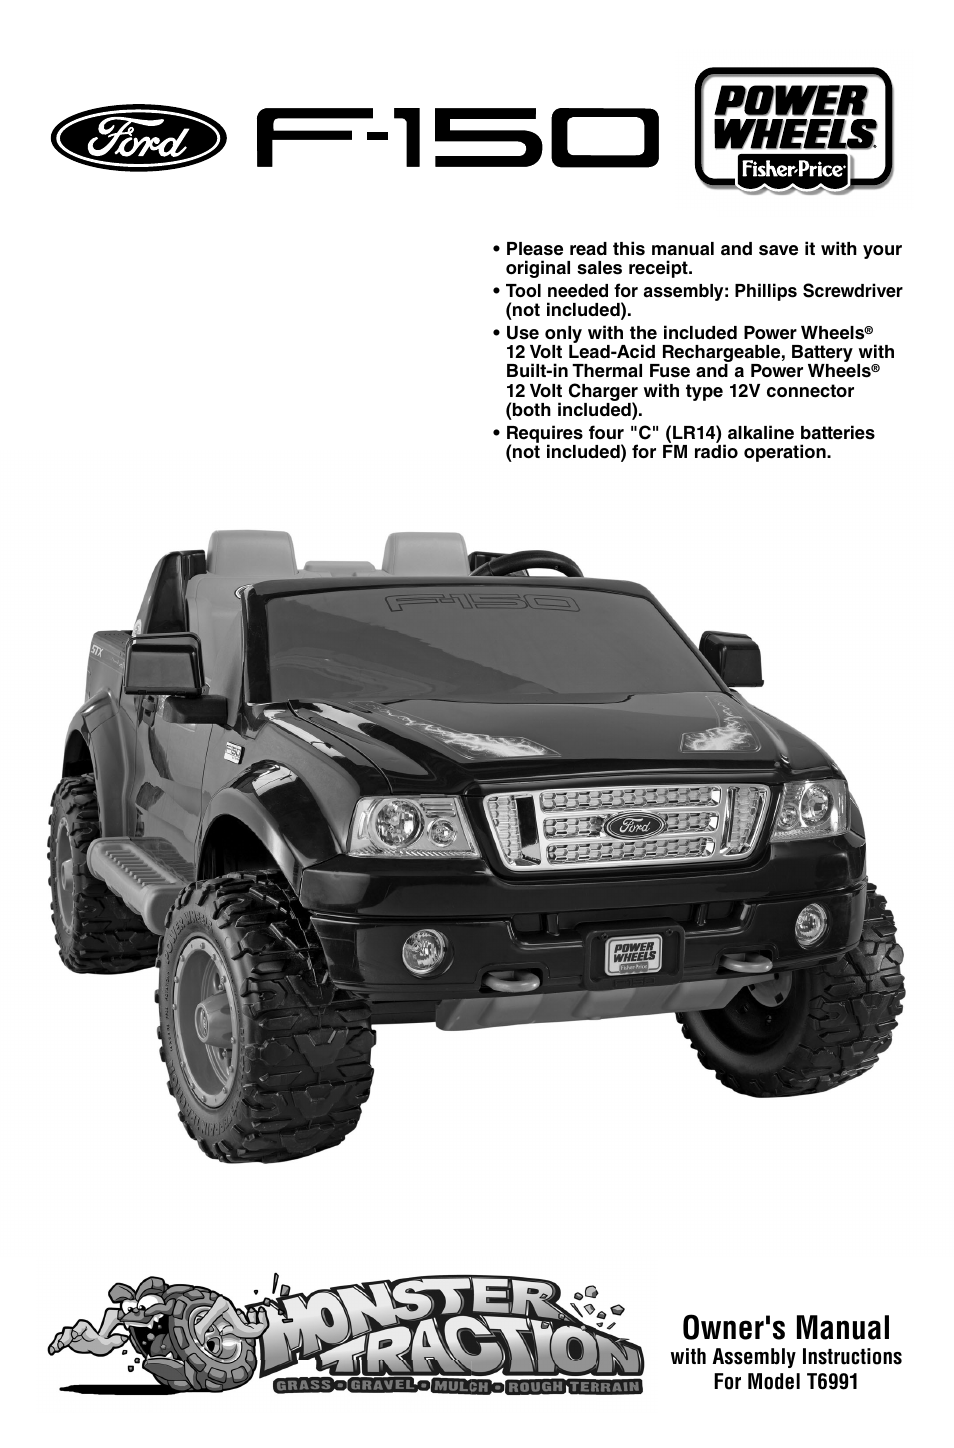 fisher price power wheels ford f 150 t6991 user manual 28 Power Wheels Ford F 150 Schematic power wheels ford f 150 schematic